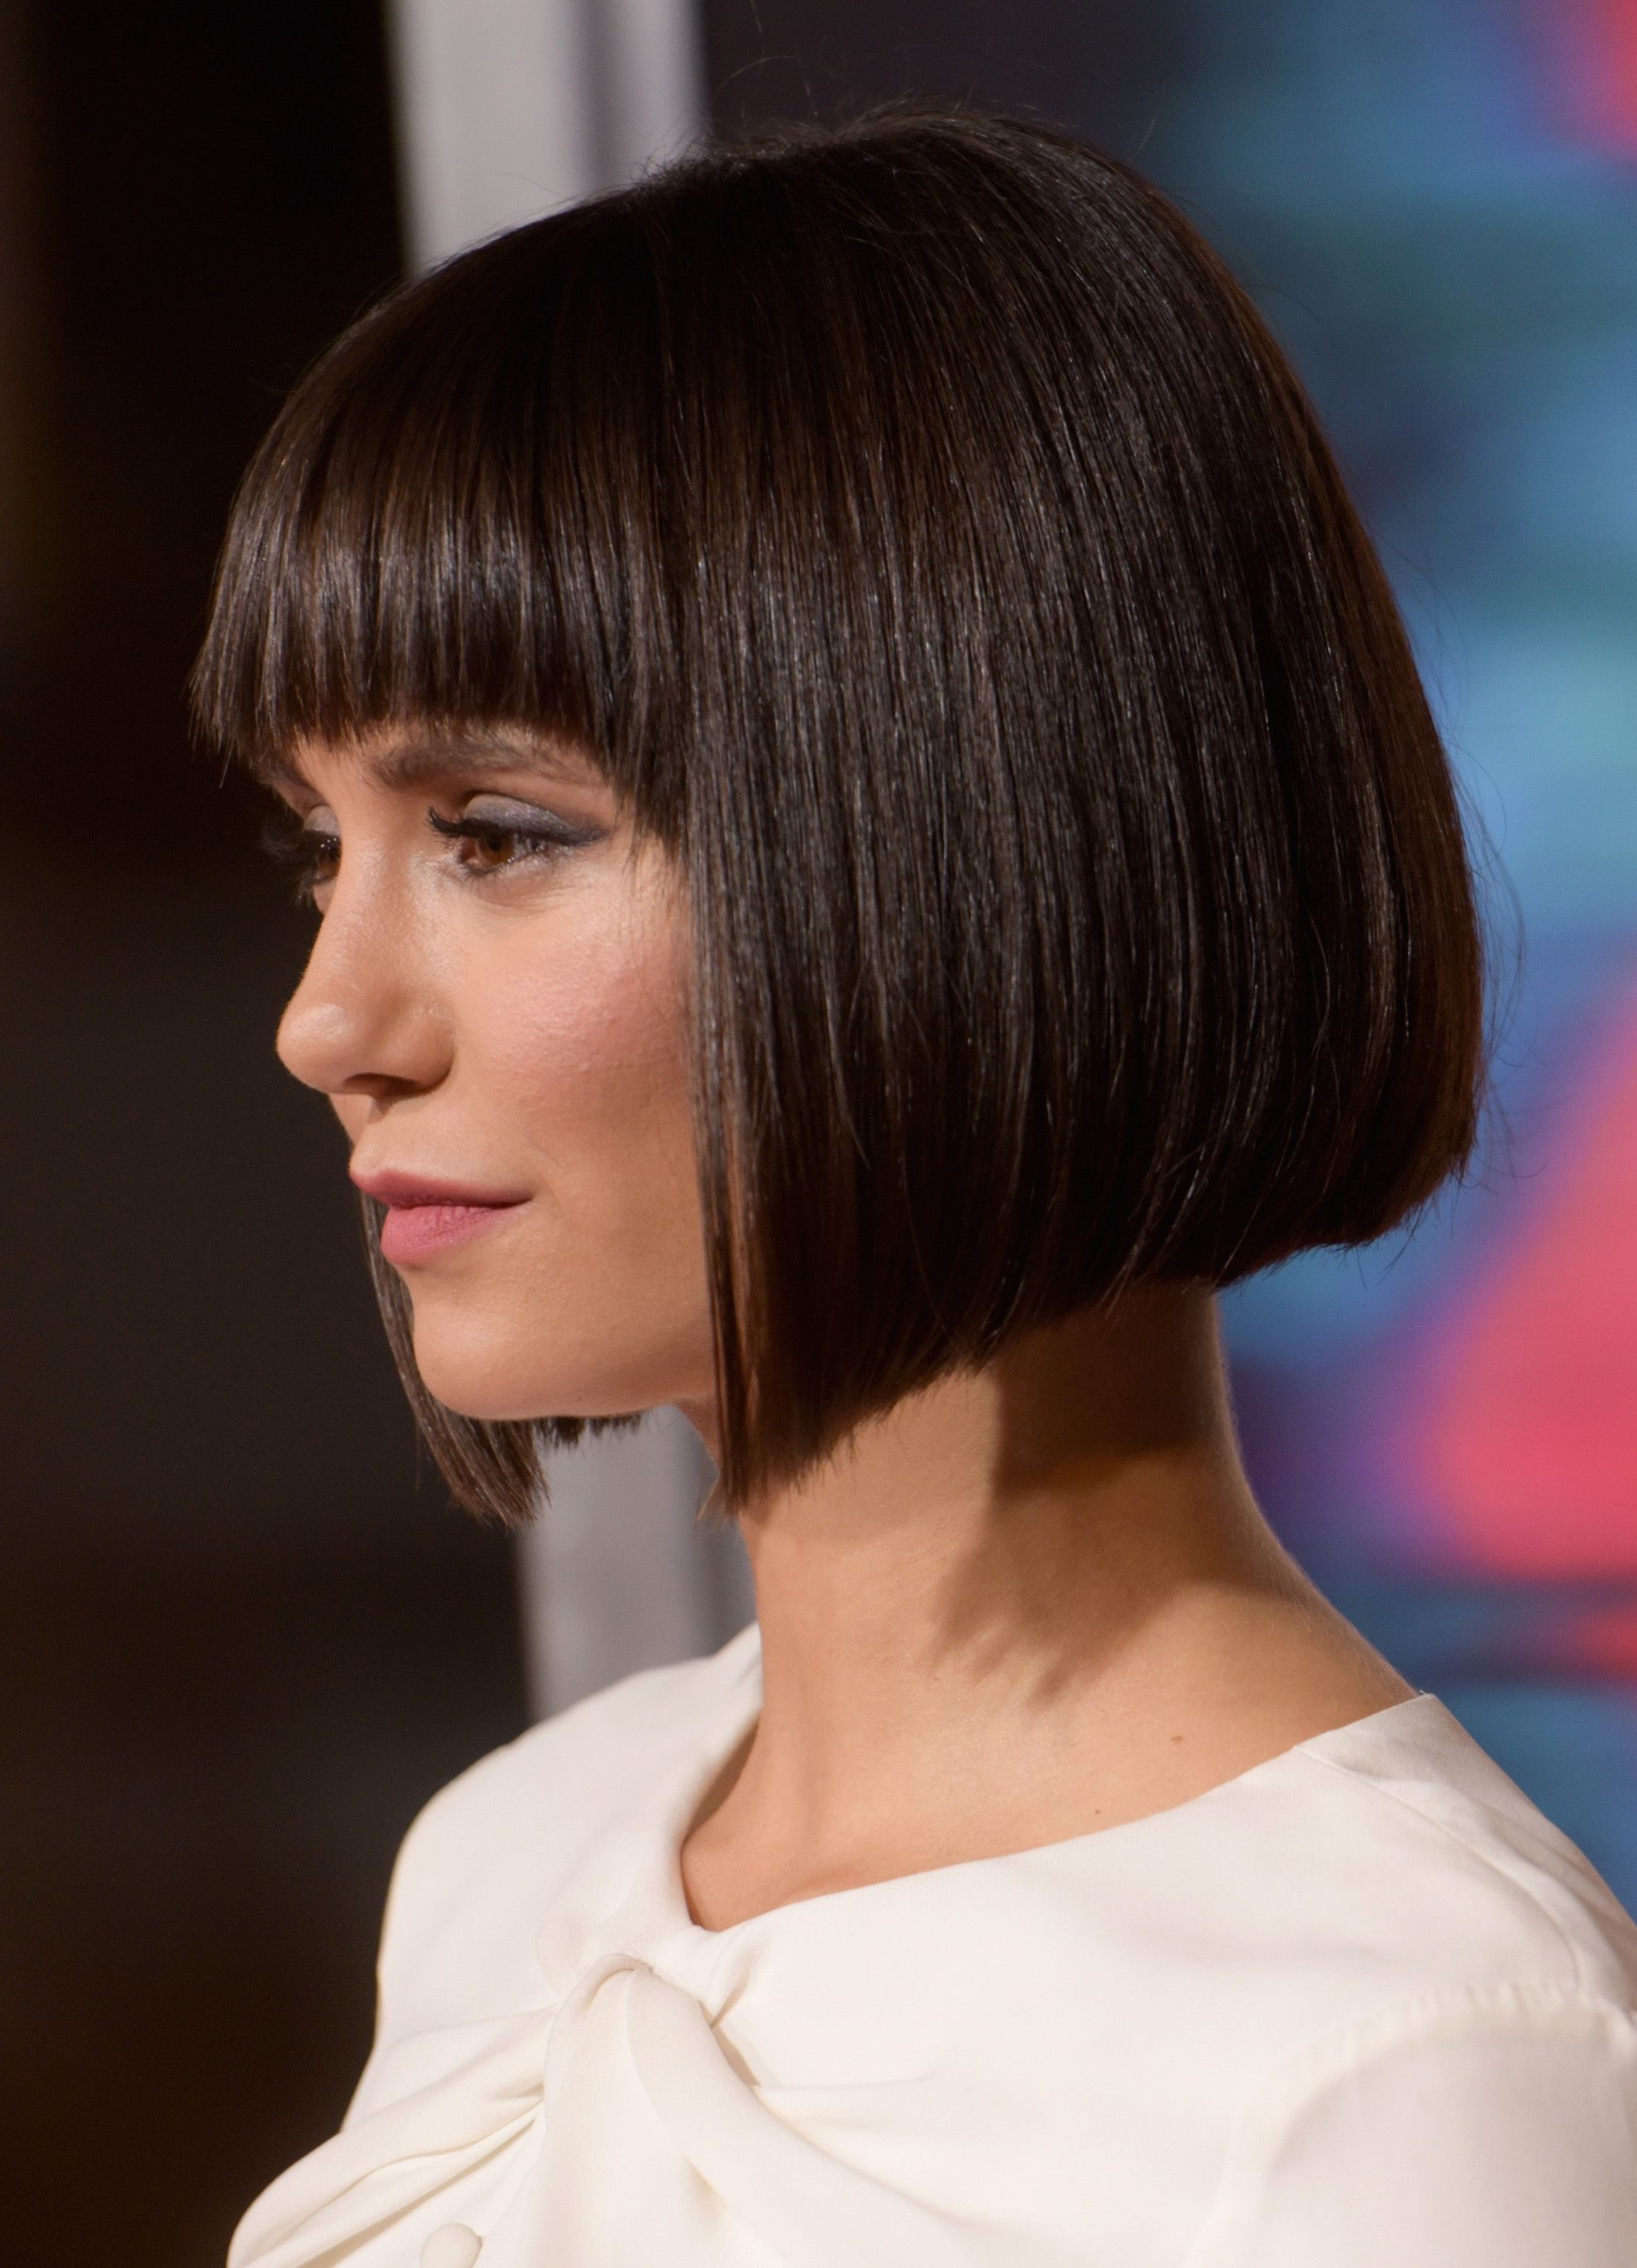 Fashionable Bob Hairstyles With Full Fringe With 50 Best Bob Styles Of 2018 – Bob Haircuts & Hairstyles For Women (Gallery 5 of 20)